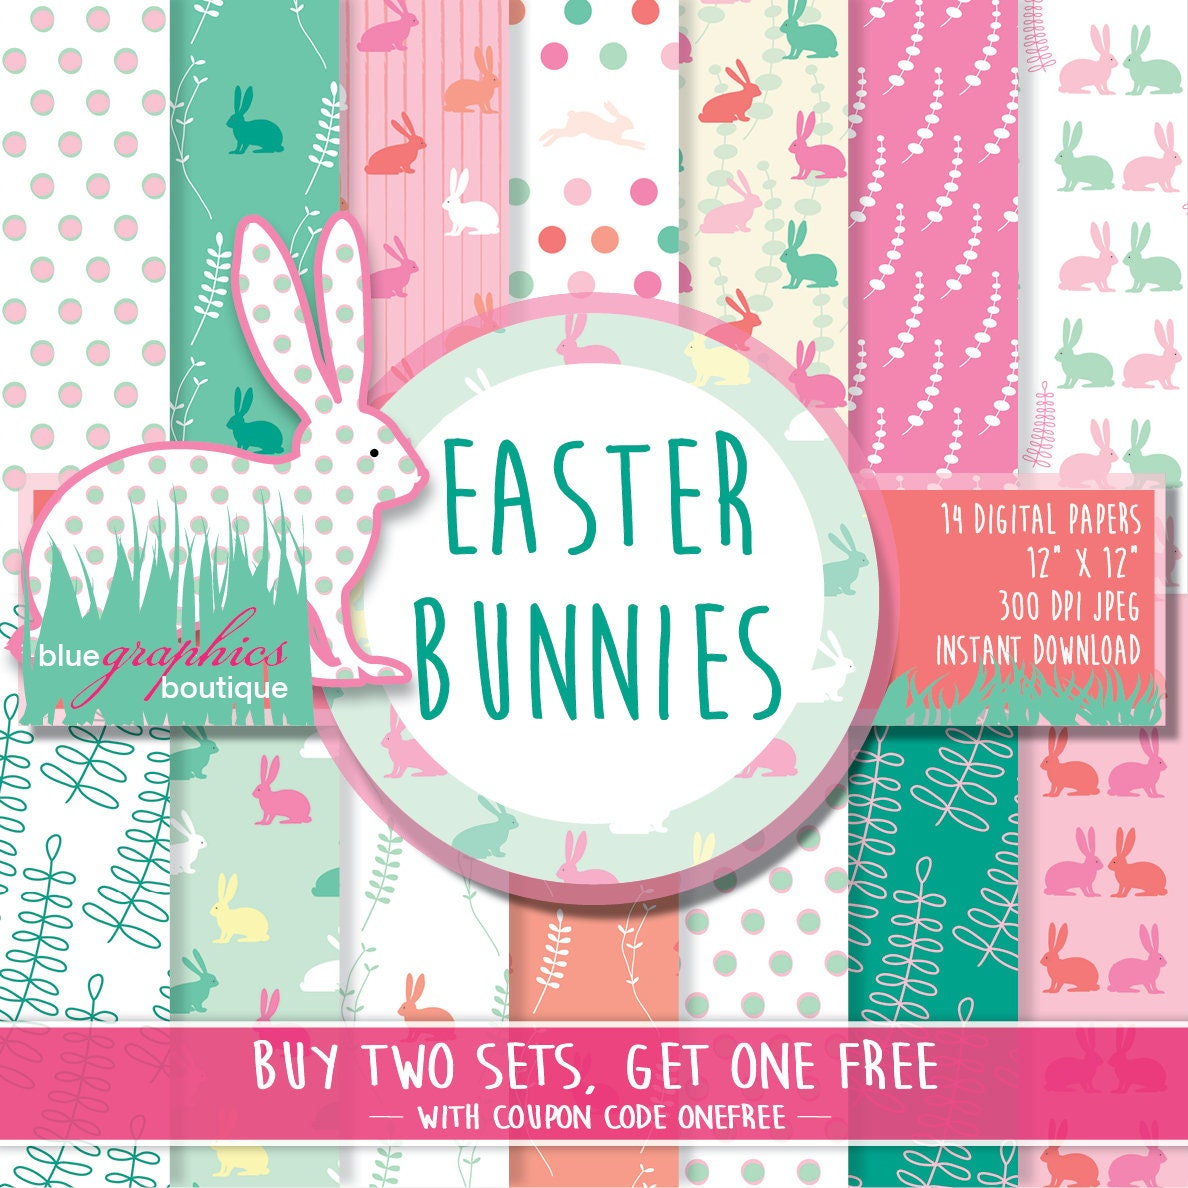 Easter printable bunny Free Commercial Use for Small Business EASTER BUNNIES Digital Paper Buy 2 Get 1 Free Easter scrapbook papers